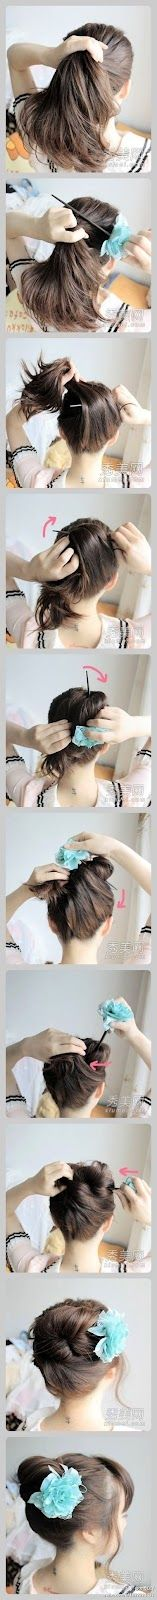 Super Cute im going to try this tomorow!!